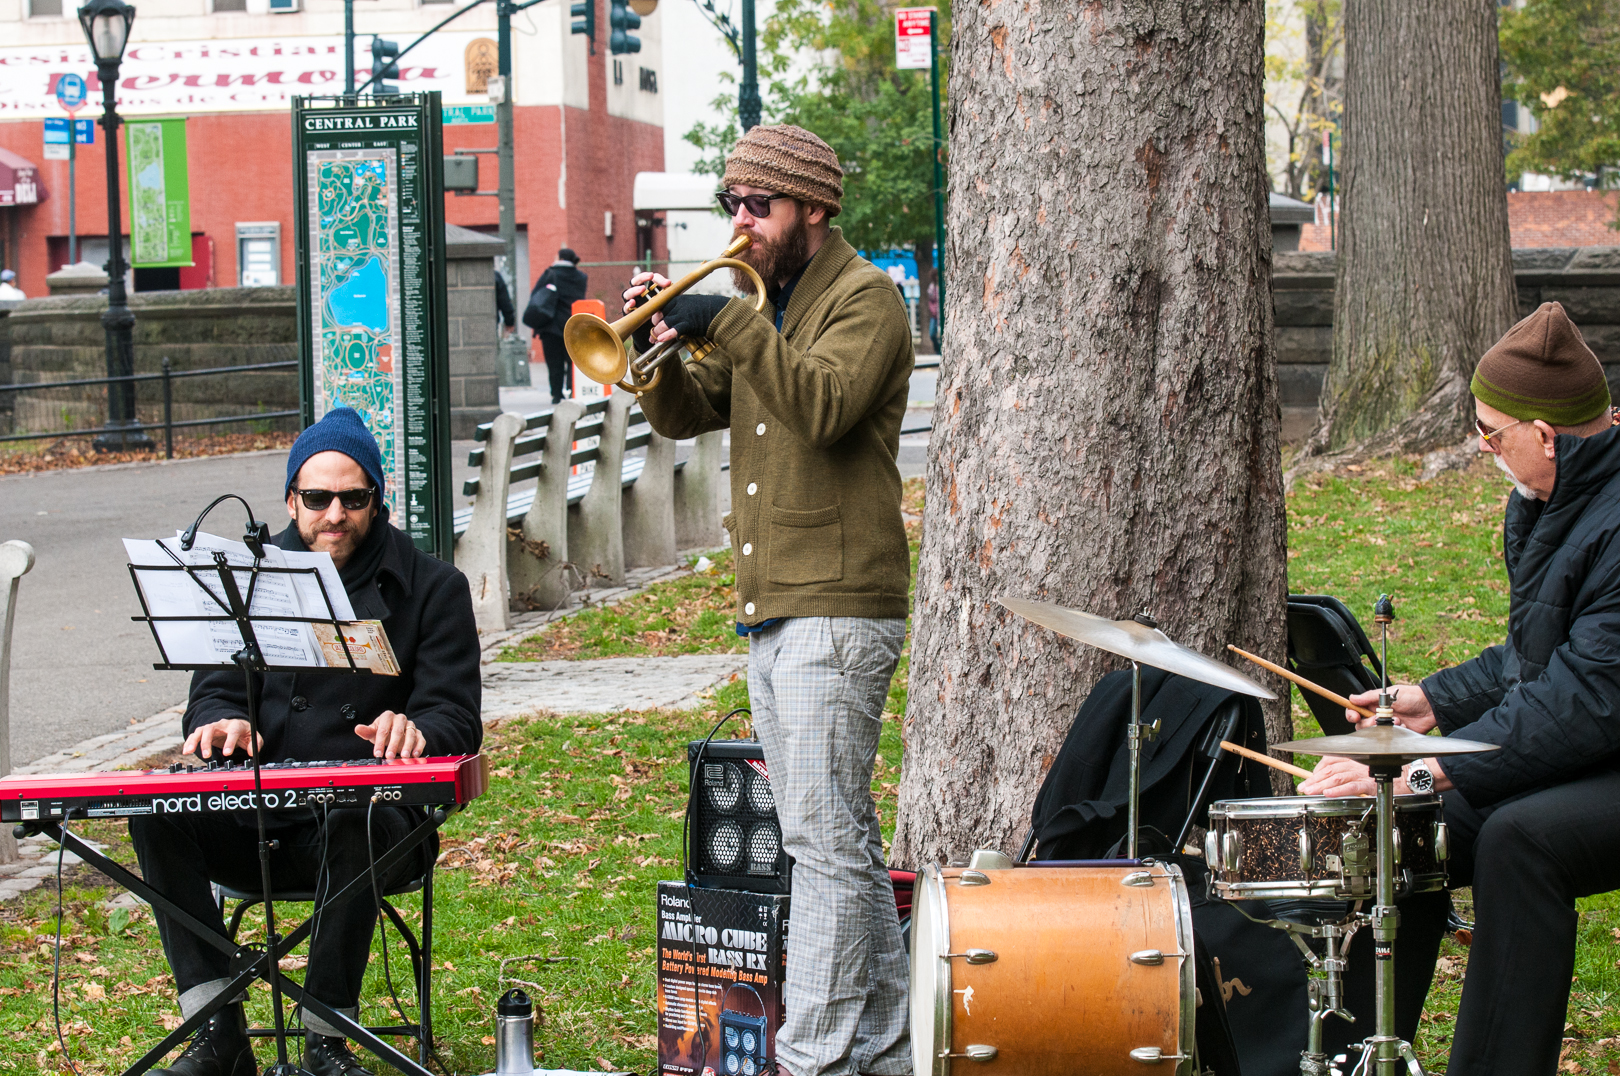 Jesse Stacken, Kirk Knuffke and Bill Goodwin at Jazz and Colors in Central Park